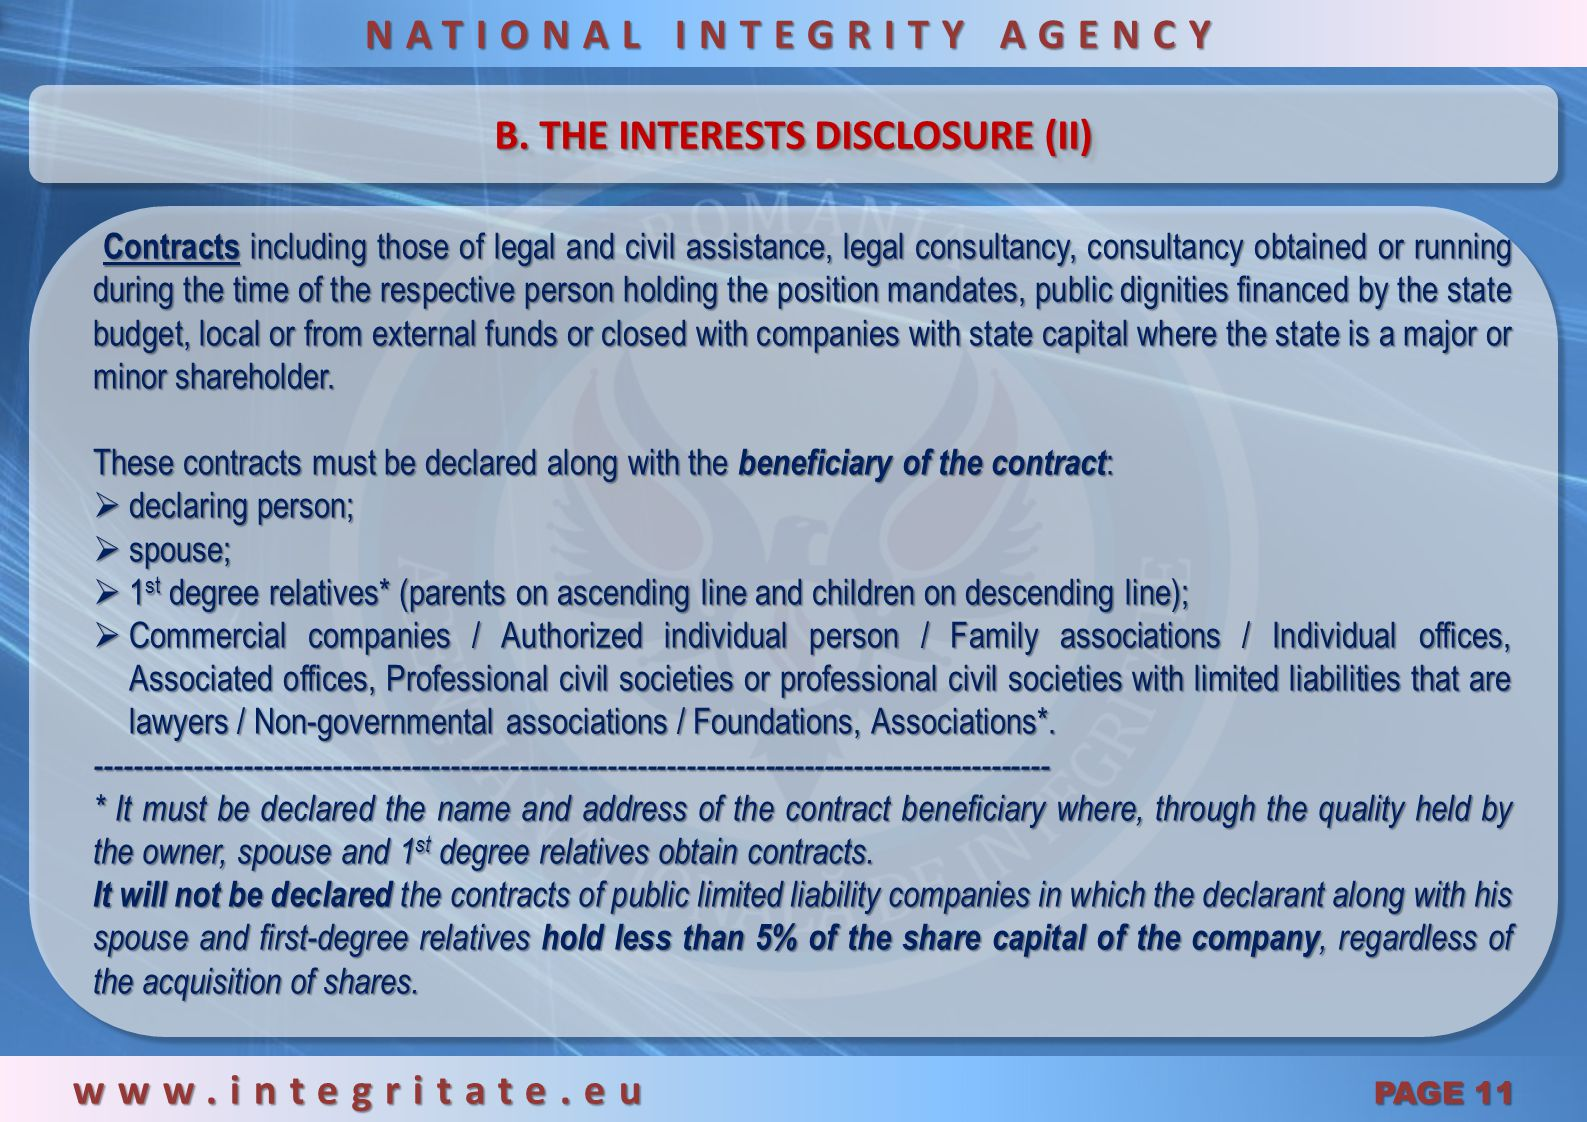 NATIONAL INTEGRITY AGENCY